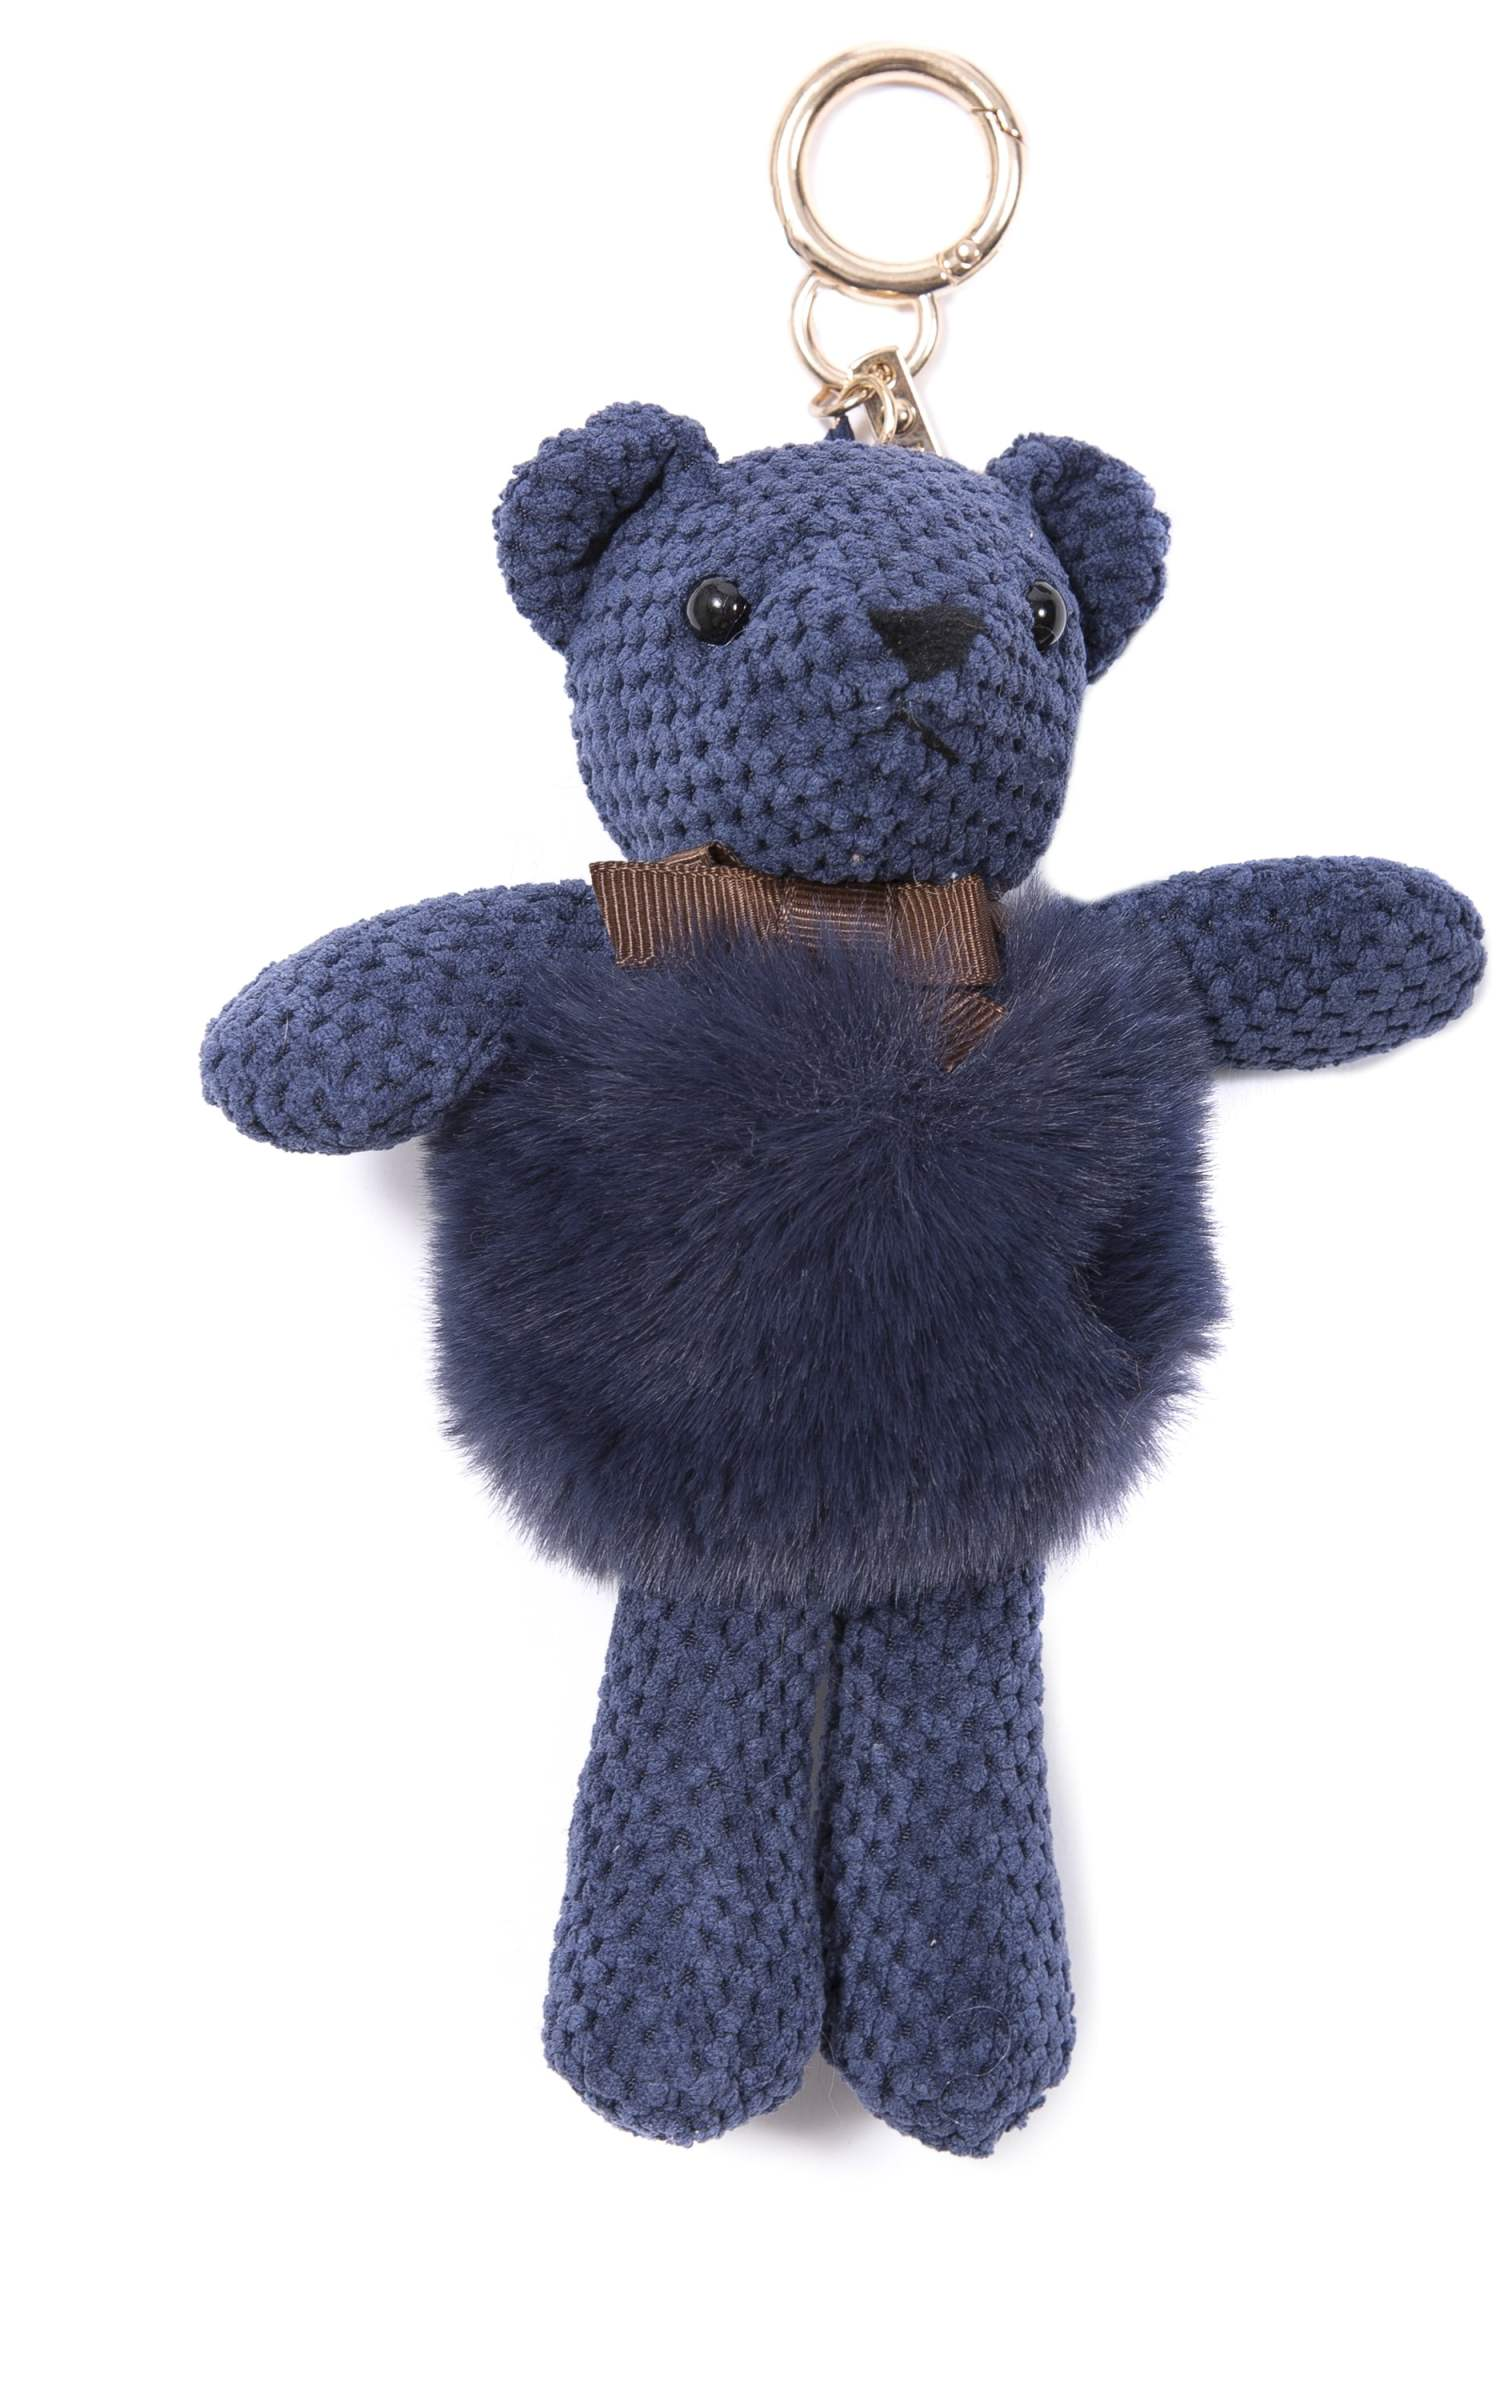 jayley-faux-fur-teddy-bear-p1104-12927_zoom